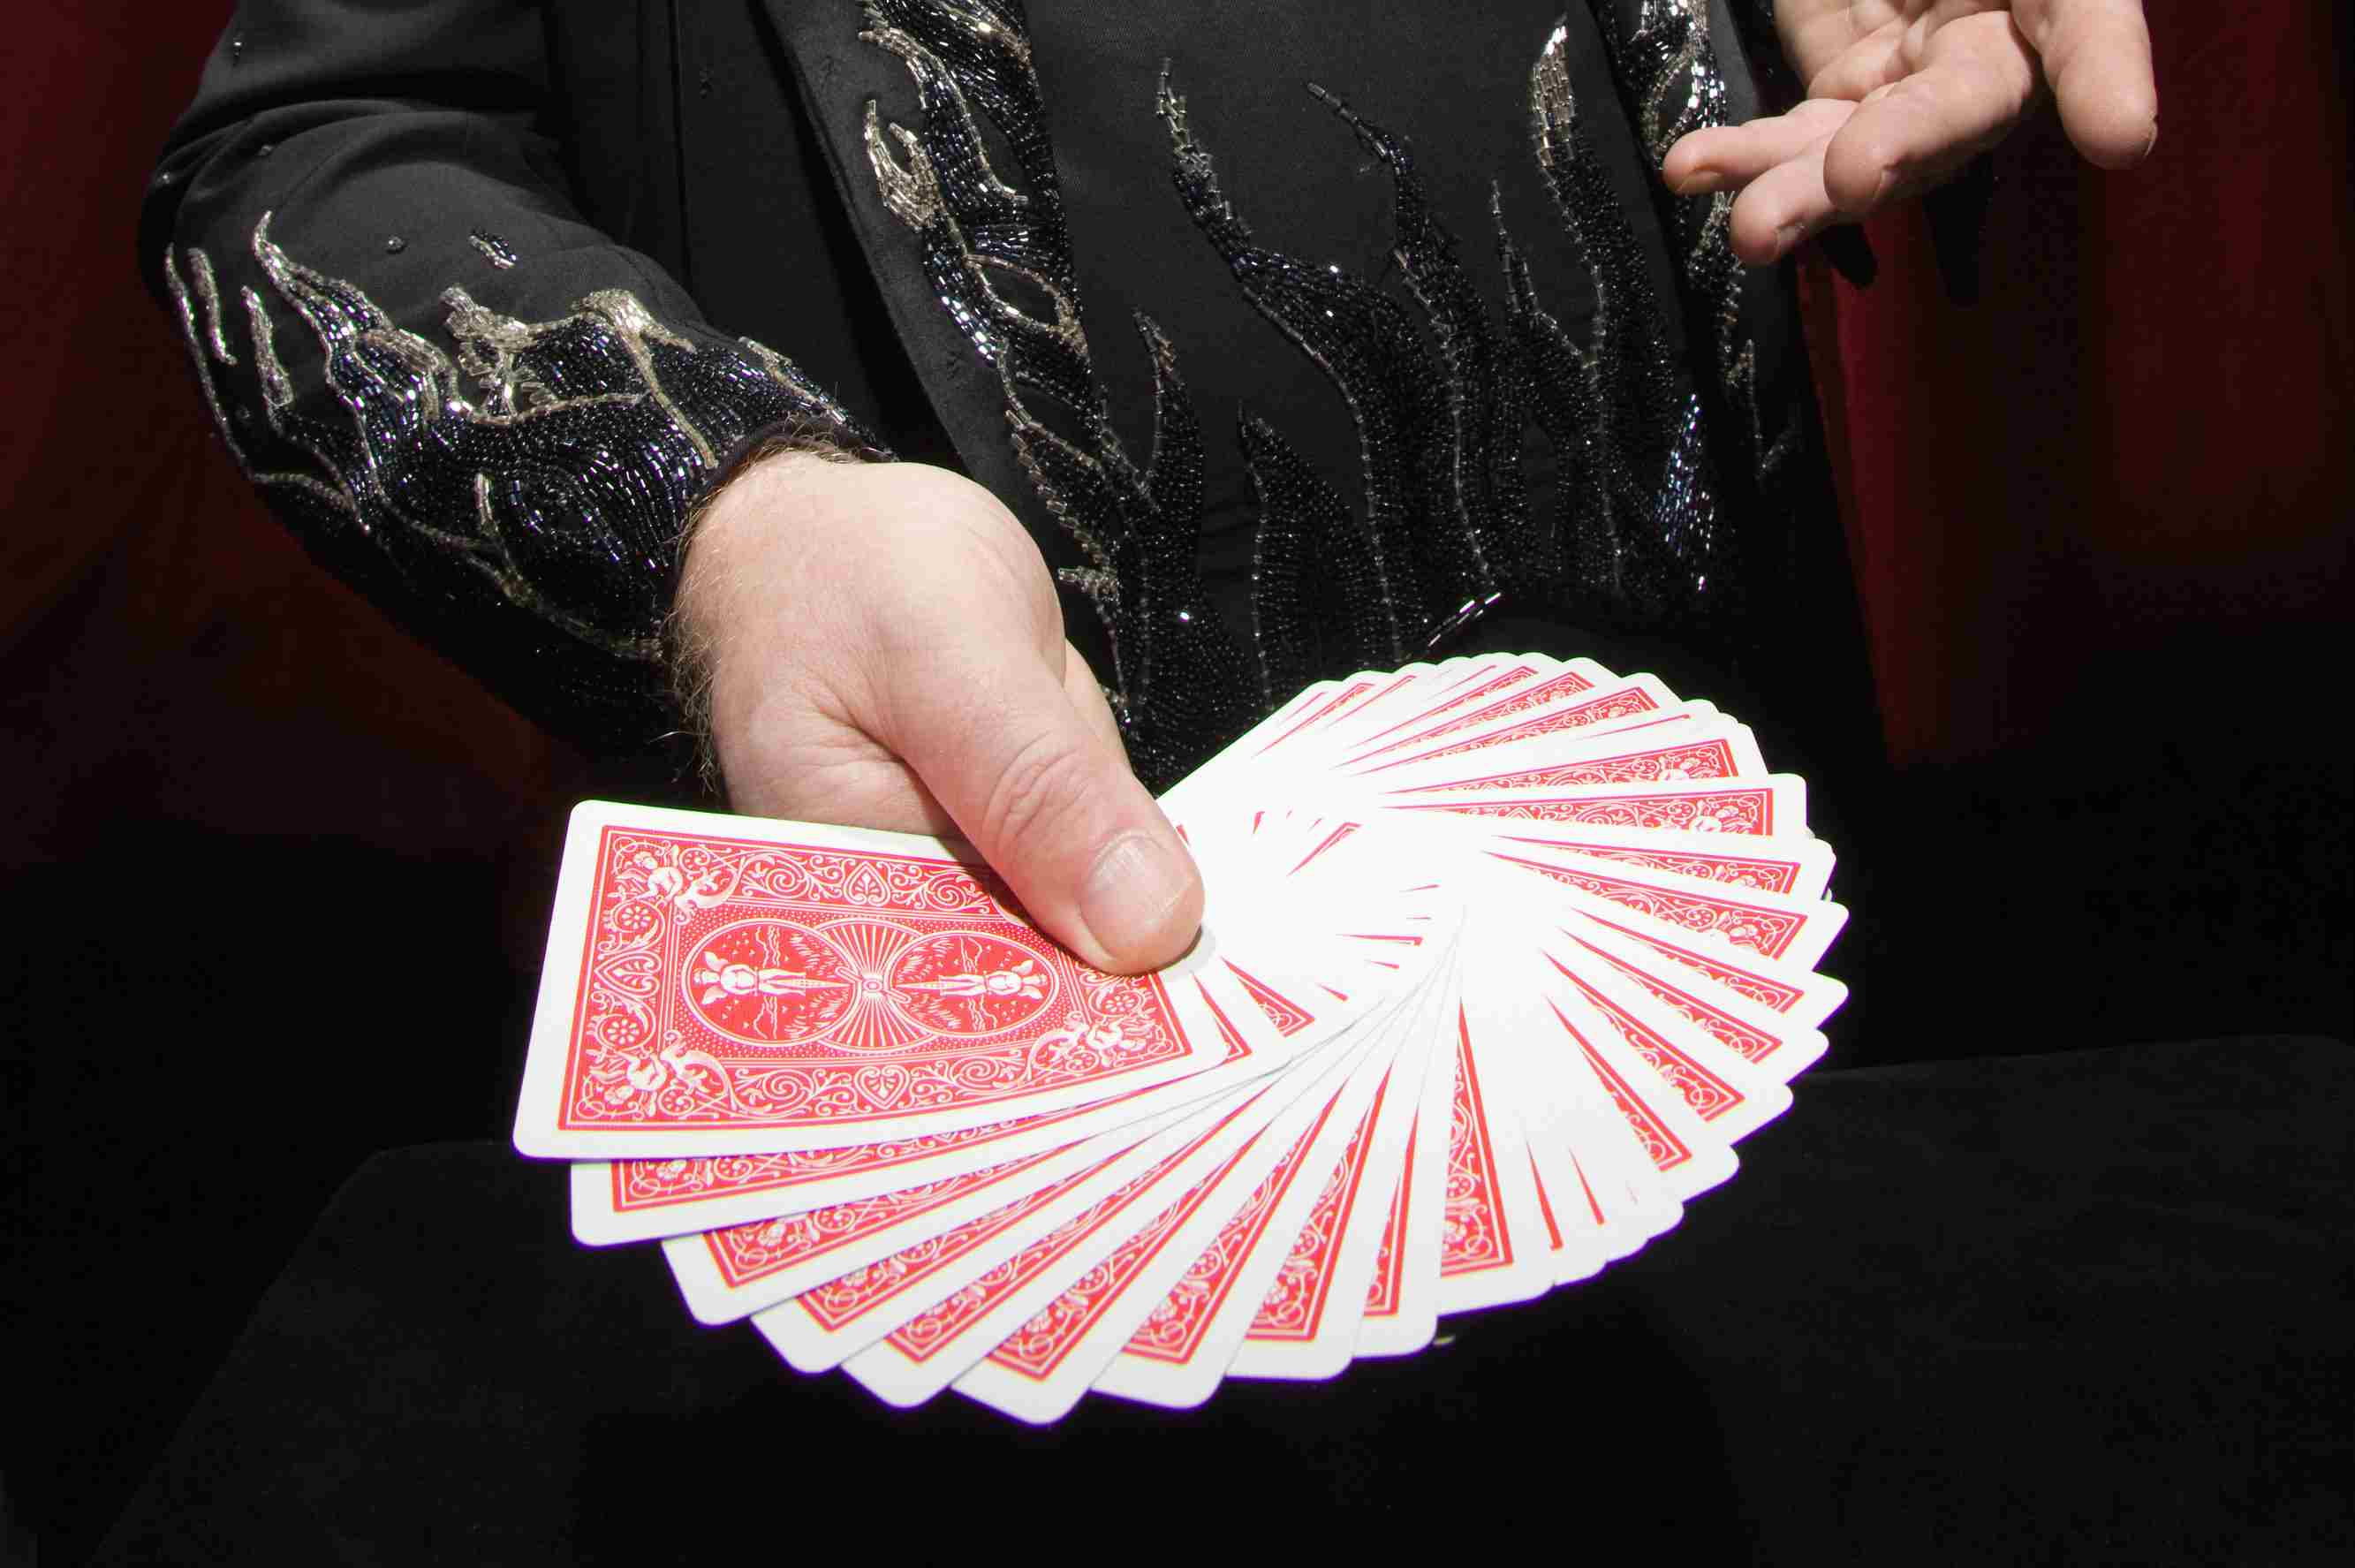 Magician fanning cards